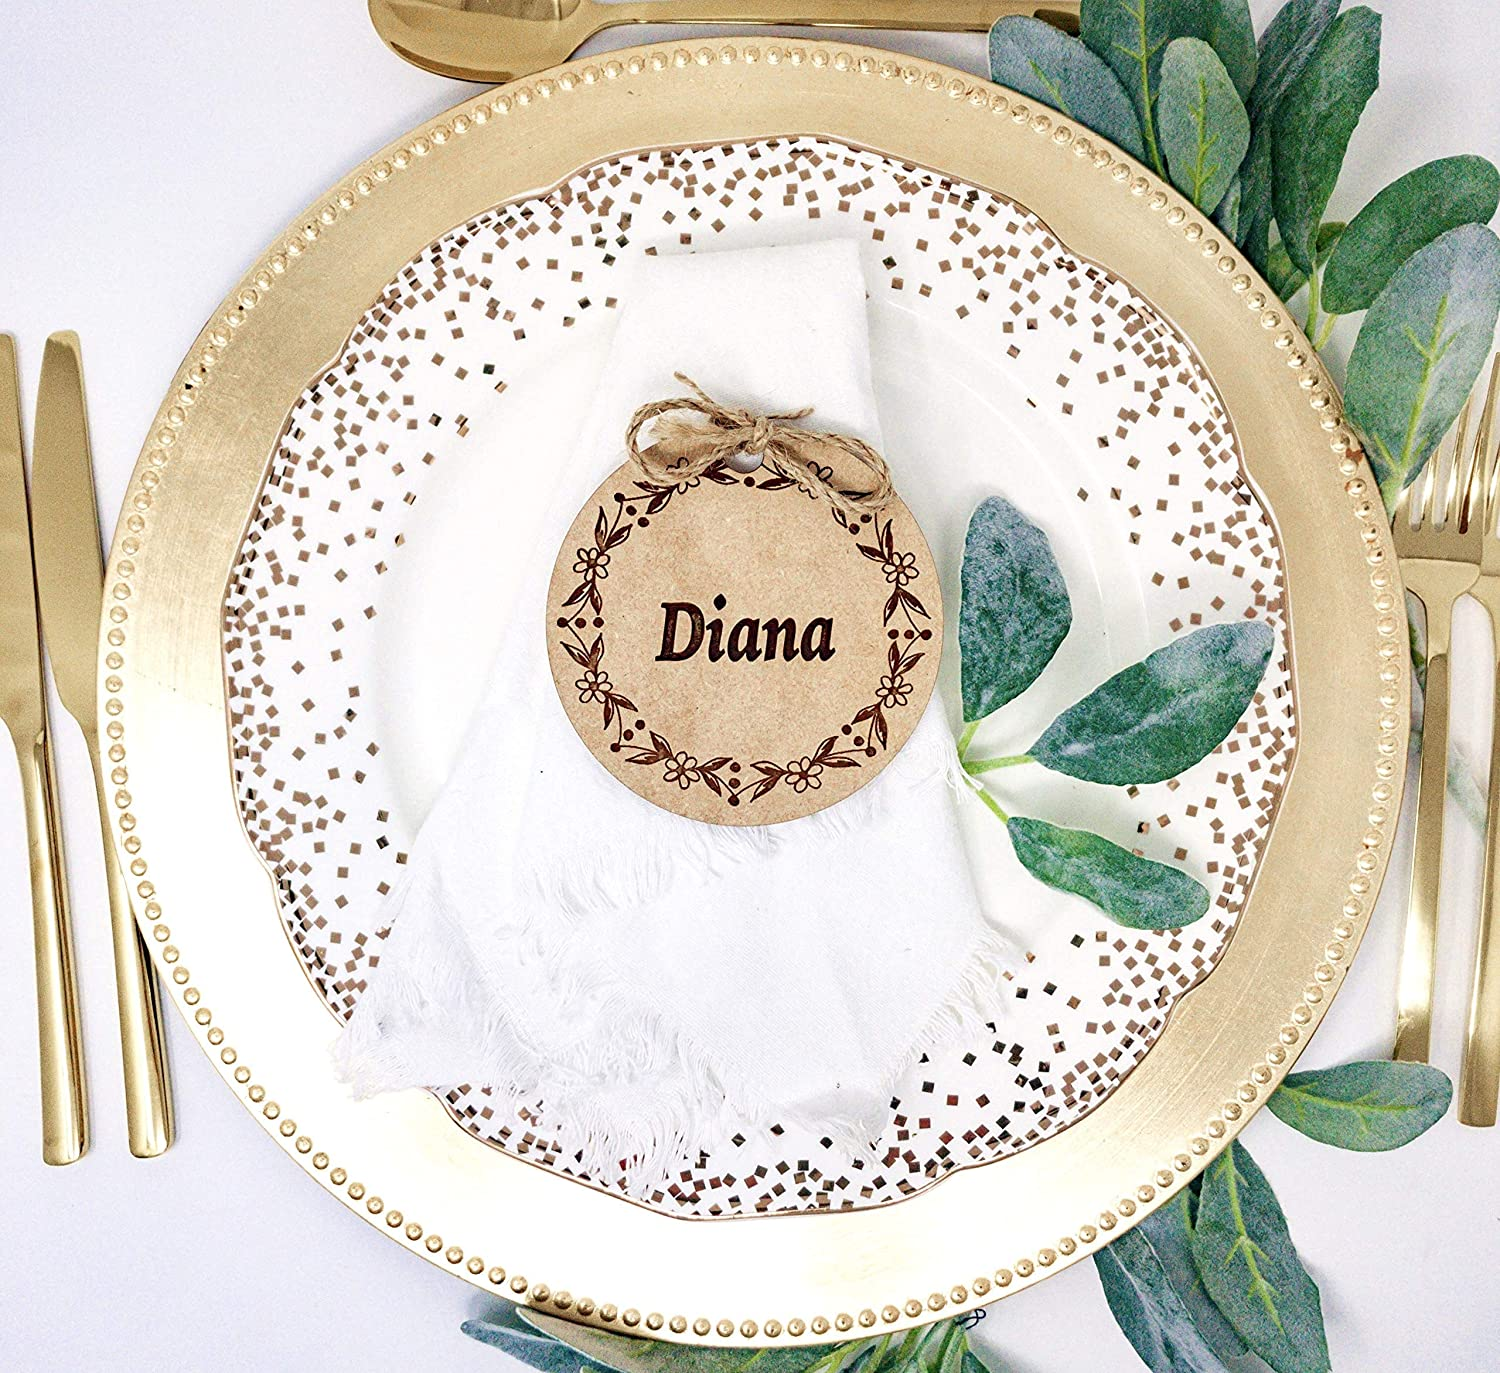 Table Place Cards Name Tags Wedding Tag Rustic Party Max 68% OFF Free shipping